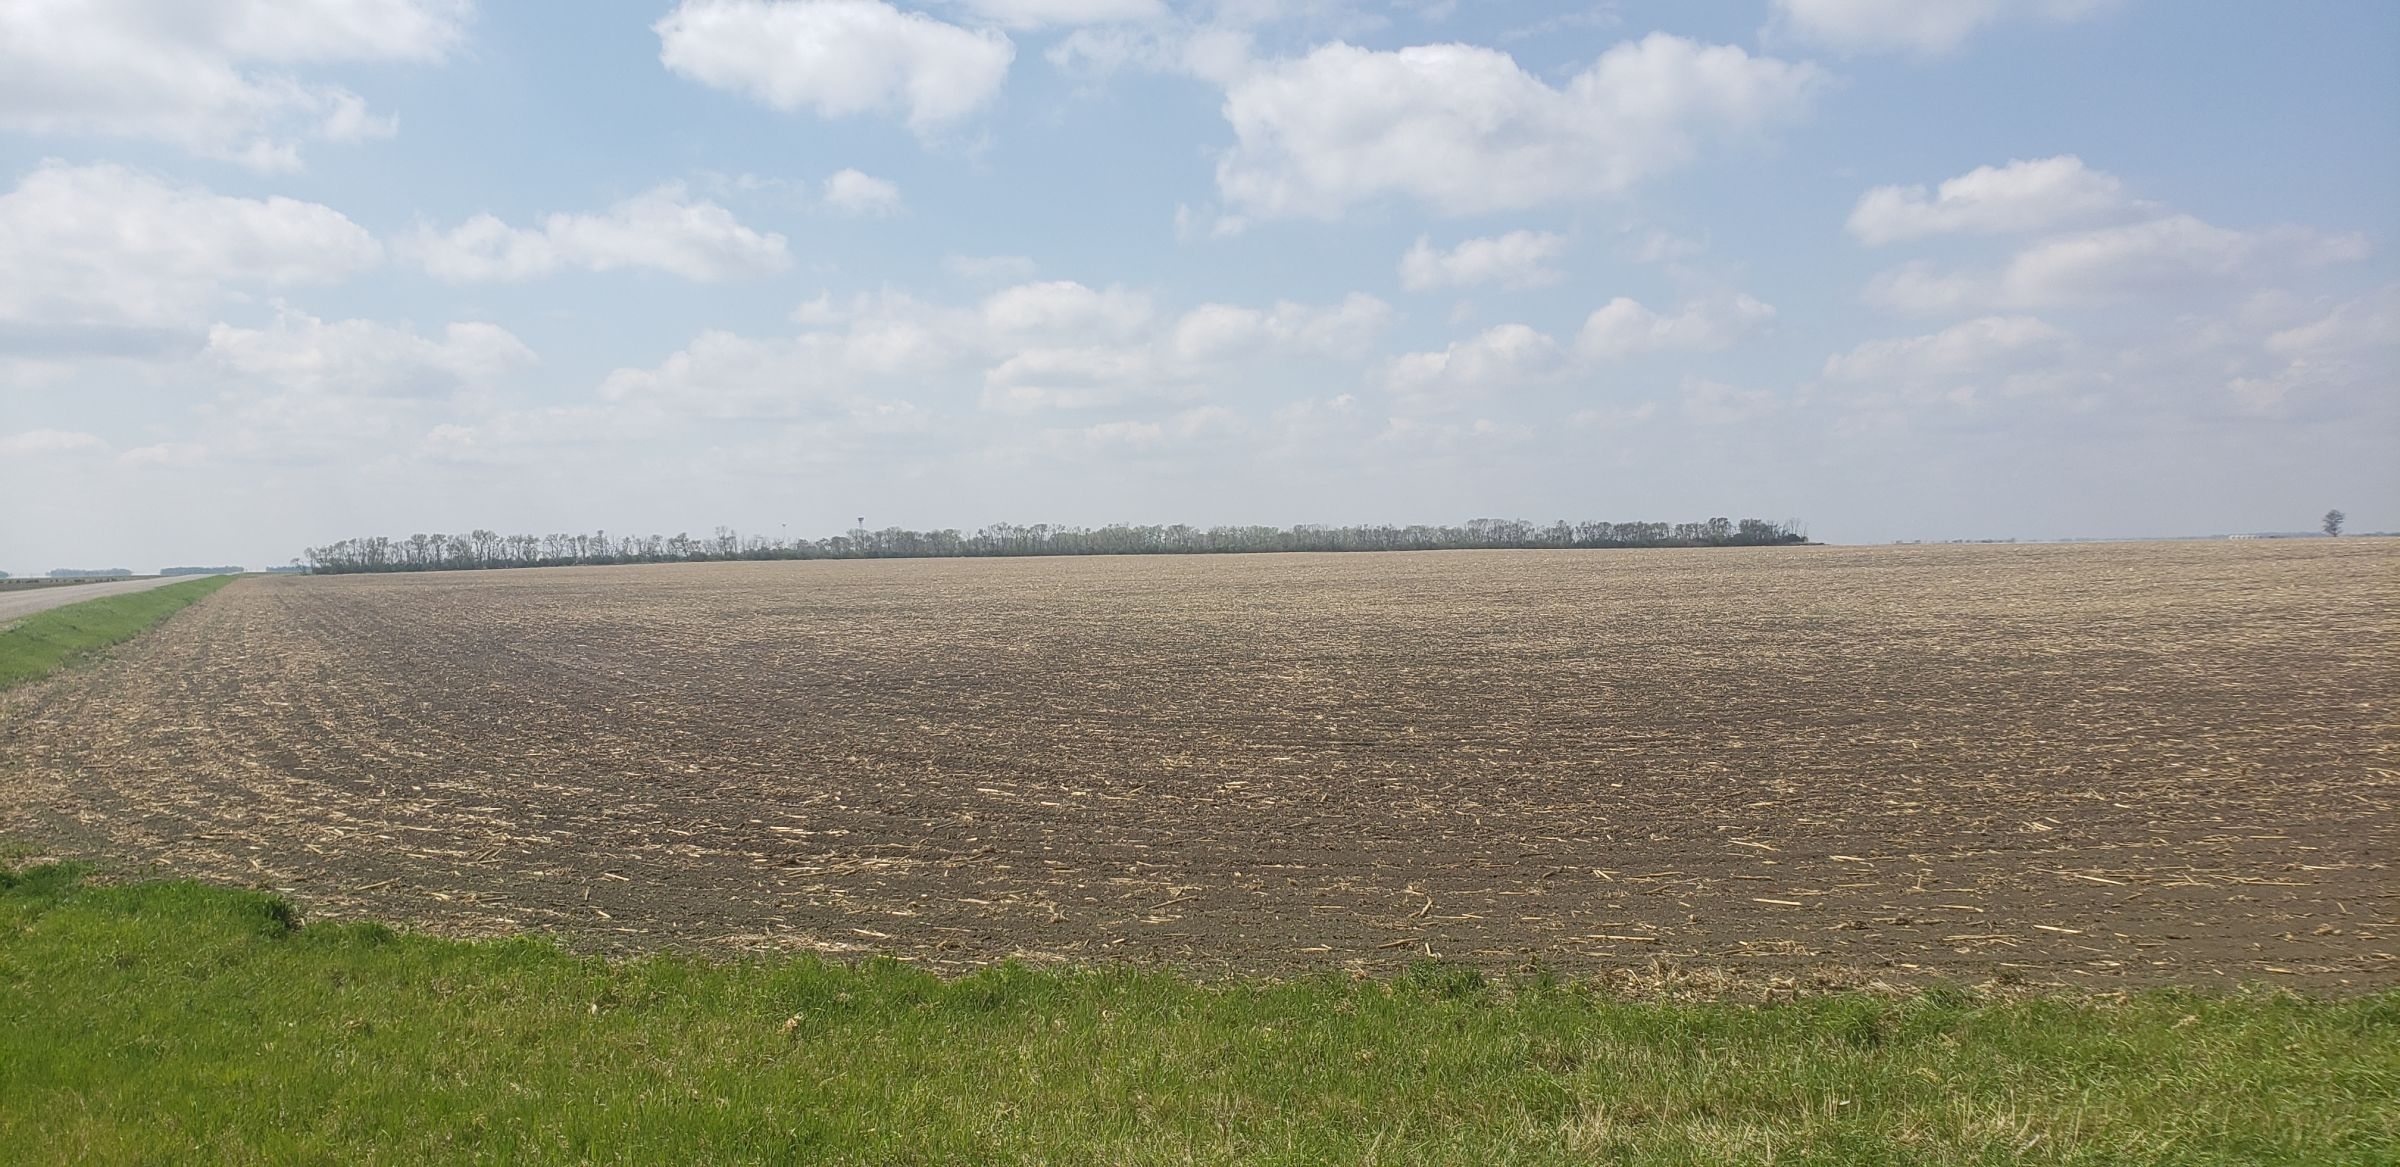 auctions-cass-county-north-dakota-157-acres-listing-number-15592-3-2021-06-16-180843.jpg